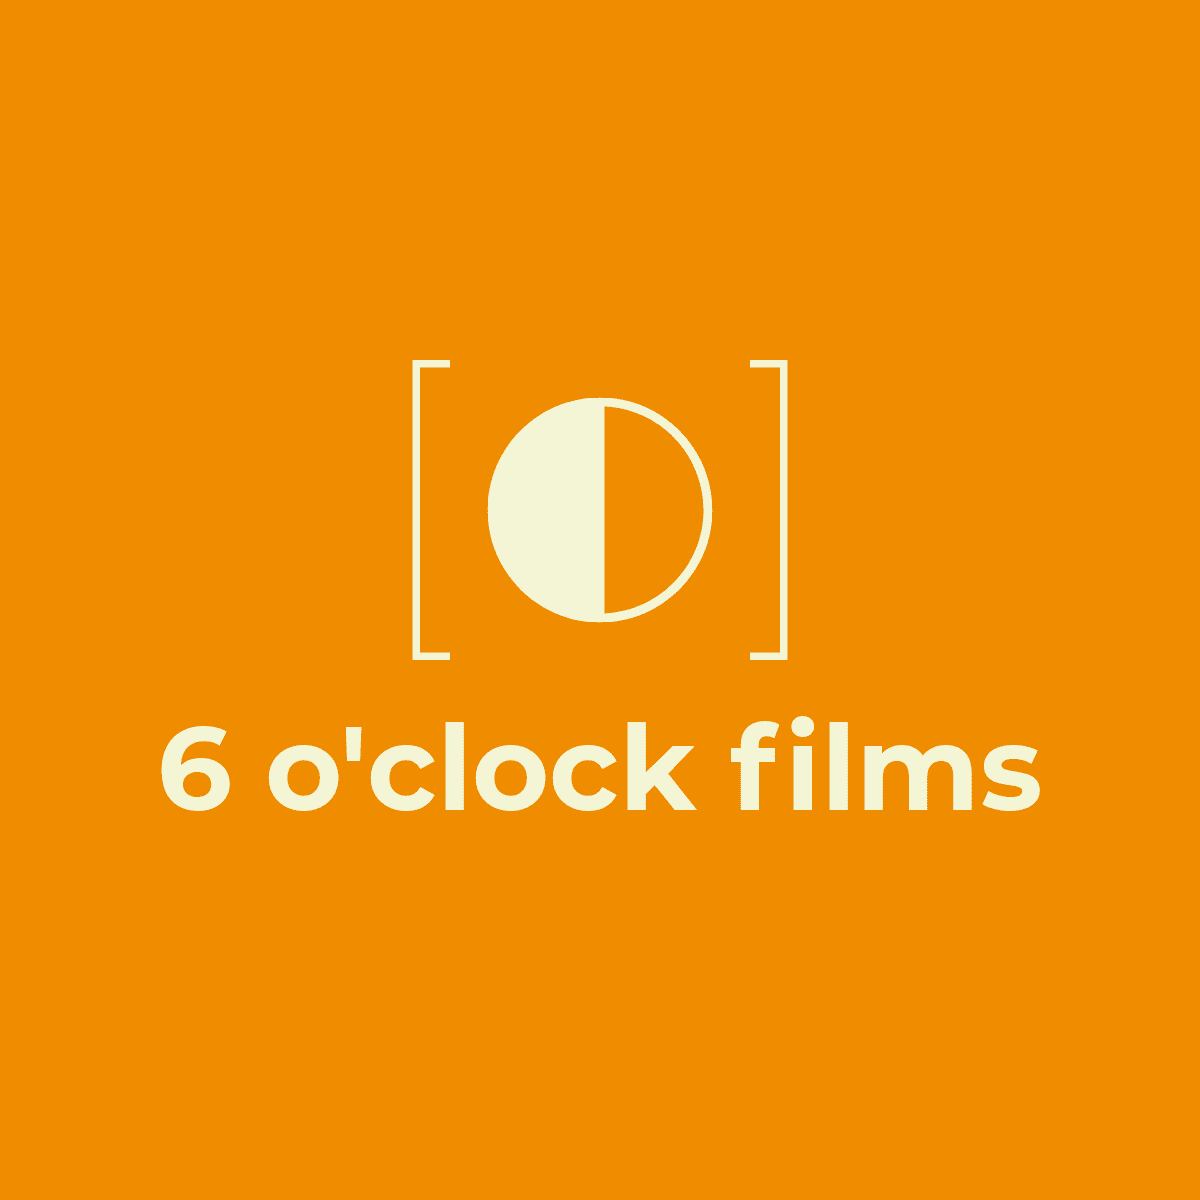 6 o'clock films Logo